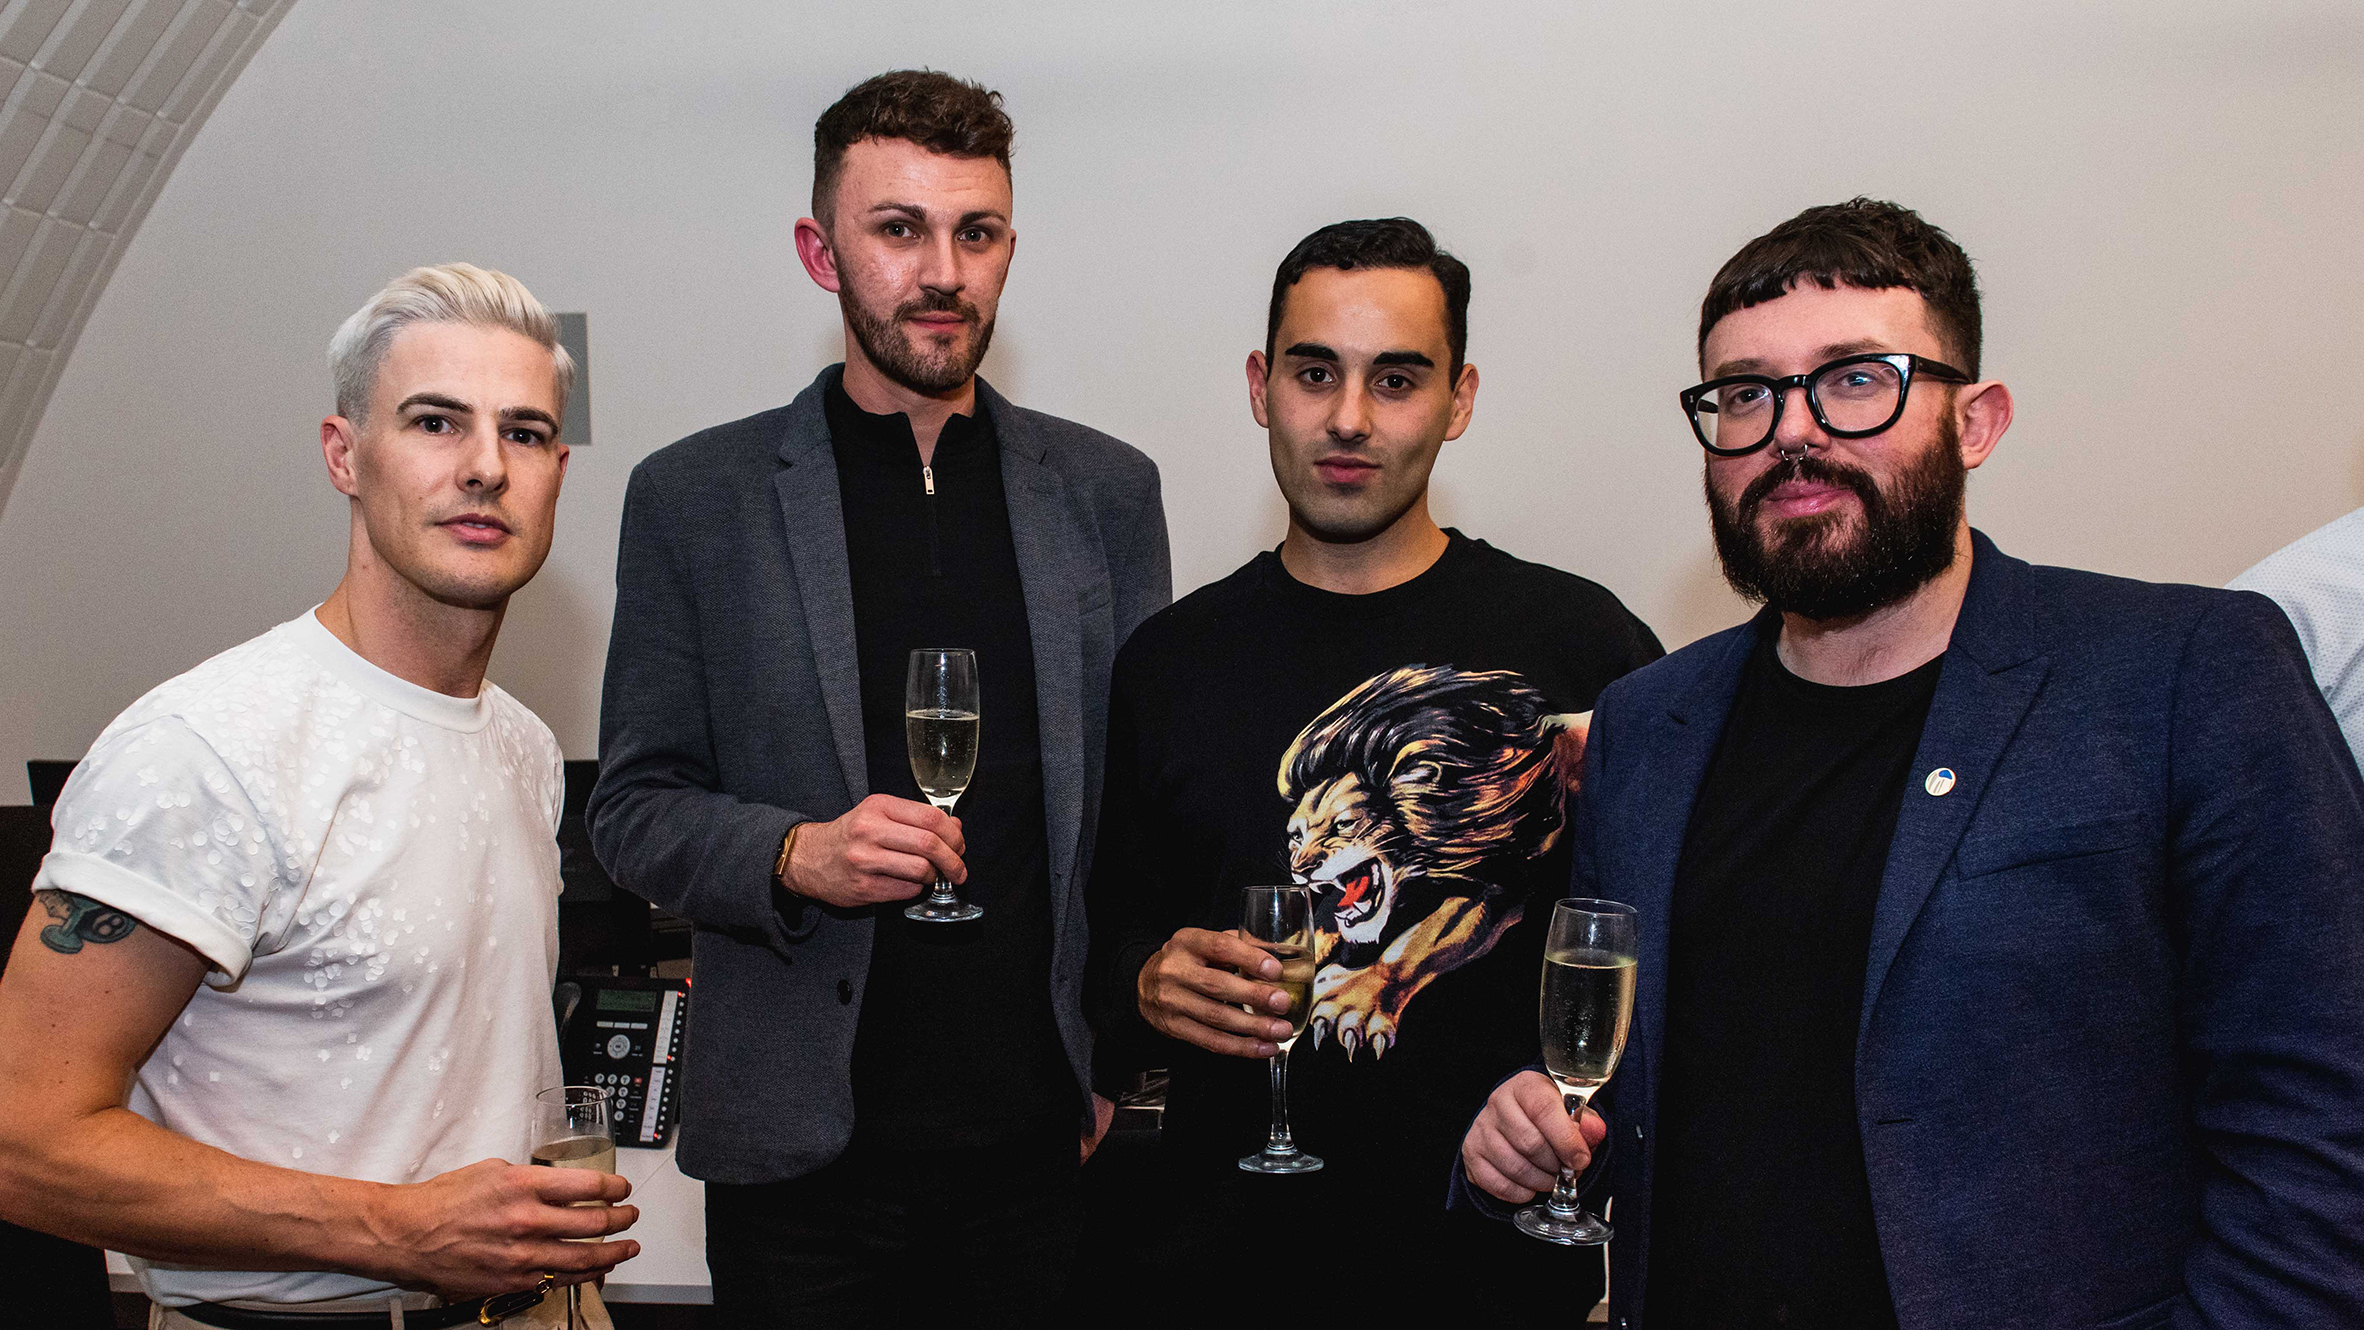 Designer Lee Broom with Brody Harrington-Lee, Jim Gurr and Carlo Di Nardo